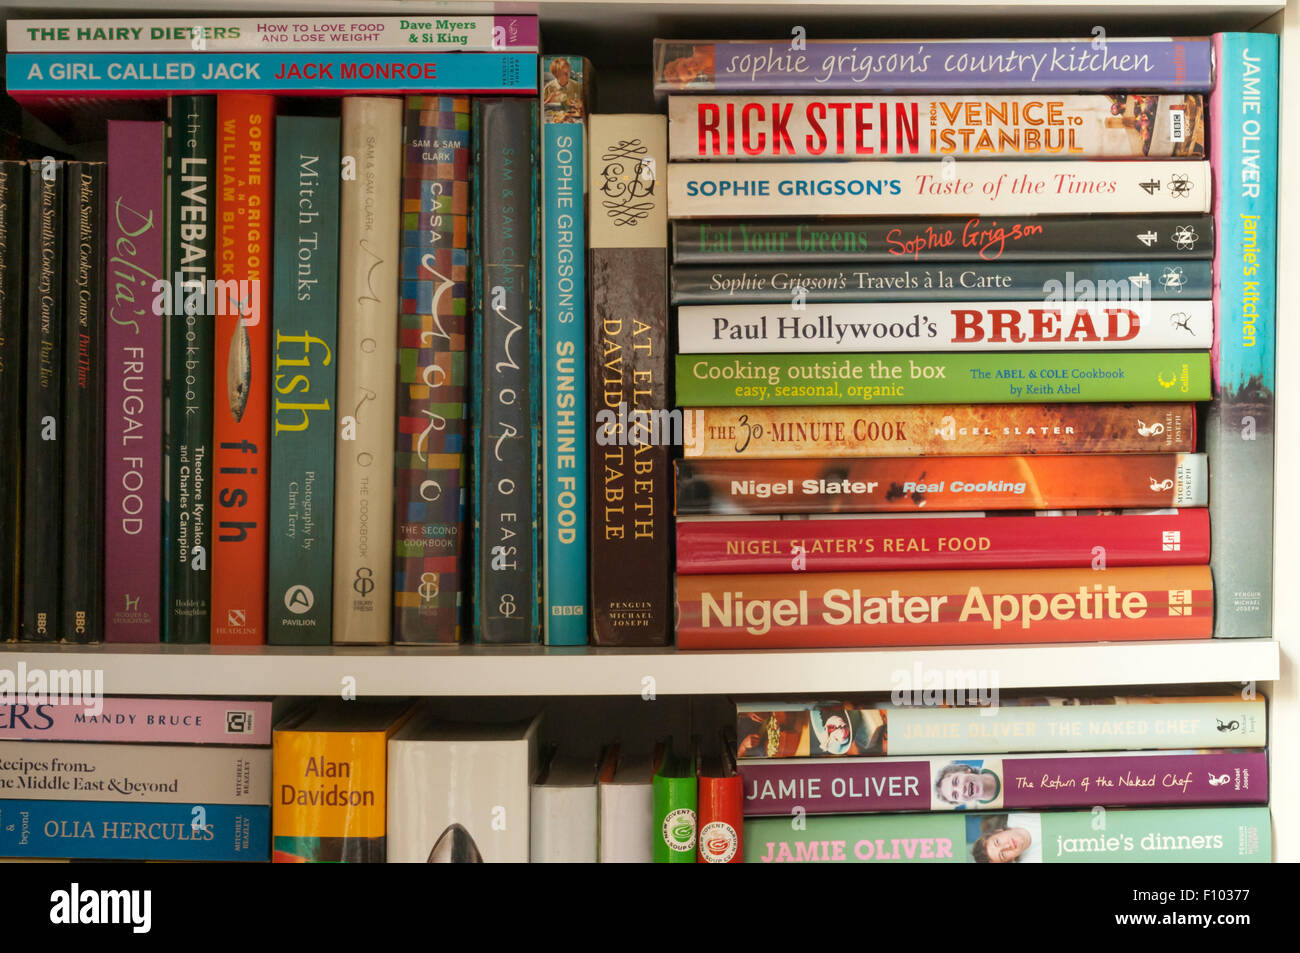 A bookcase full of cookery books. - Stock Image